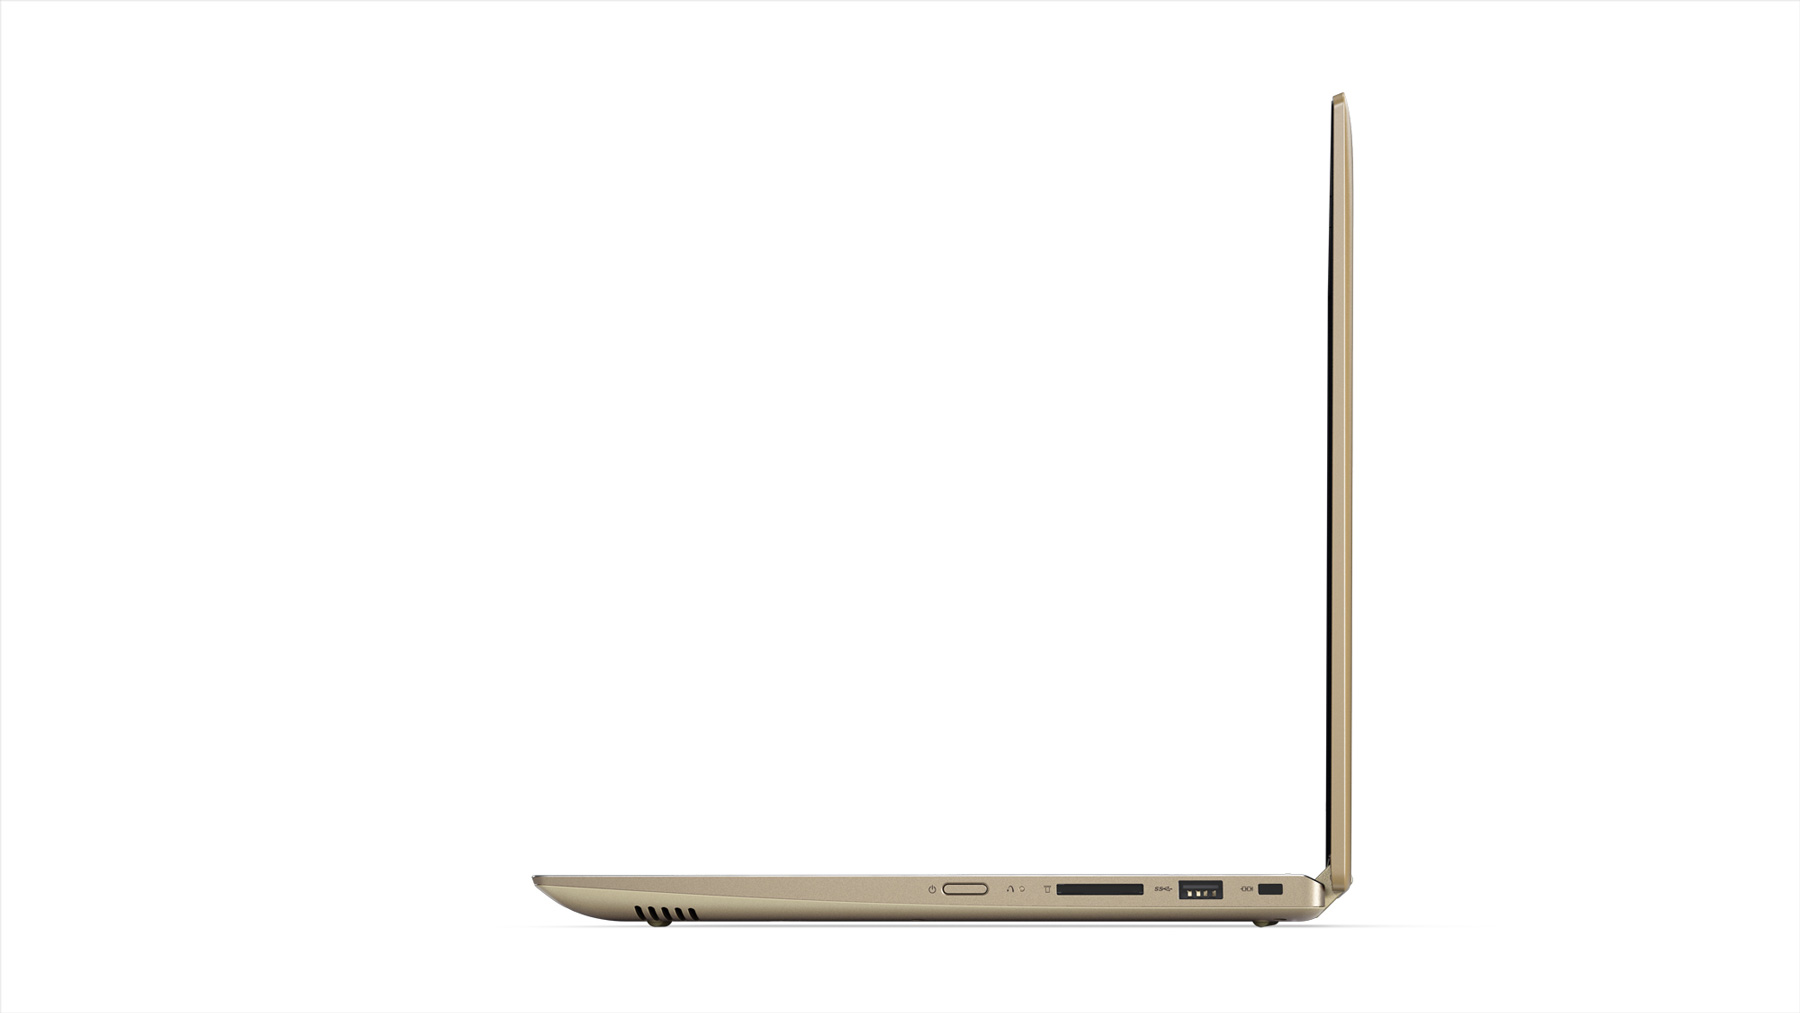 Фото  Ультрабук Lenovo Yoga 520 (81C800DDRA) Gold Metallic